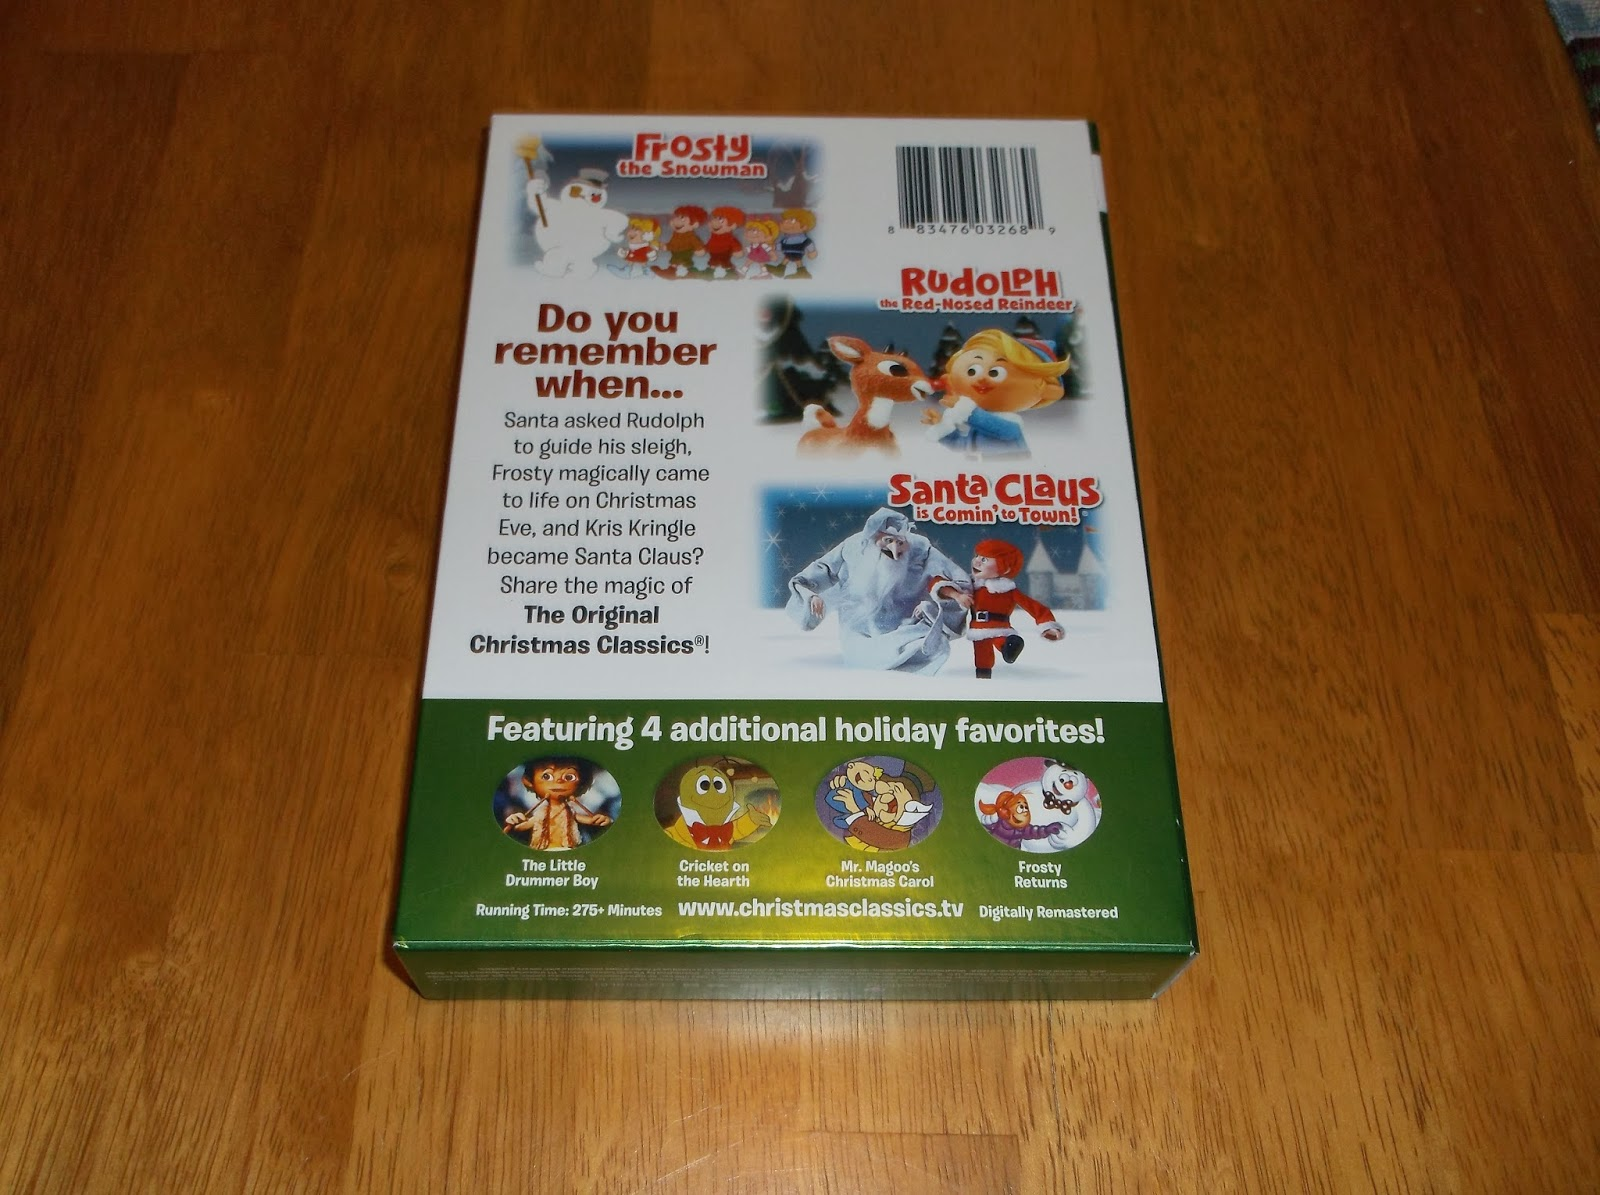 to learn more about this visit httpchristmasclassicstv and make sure to click around at all the fun stuff free wallpapers and more - The Original Christmas Classics